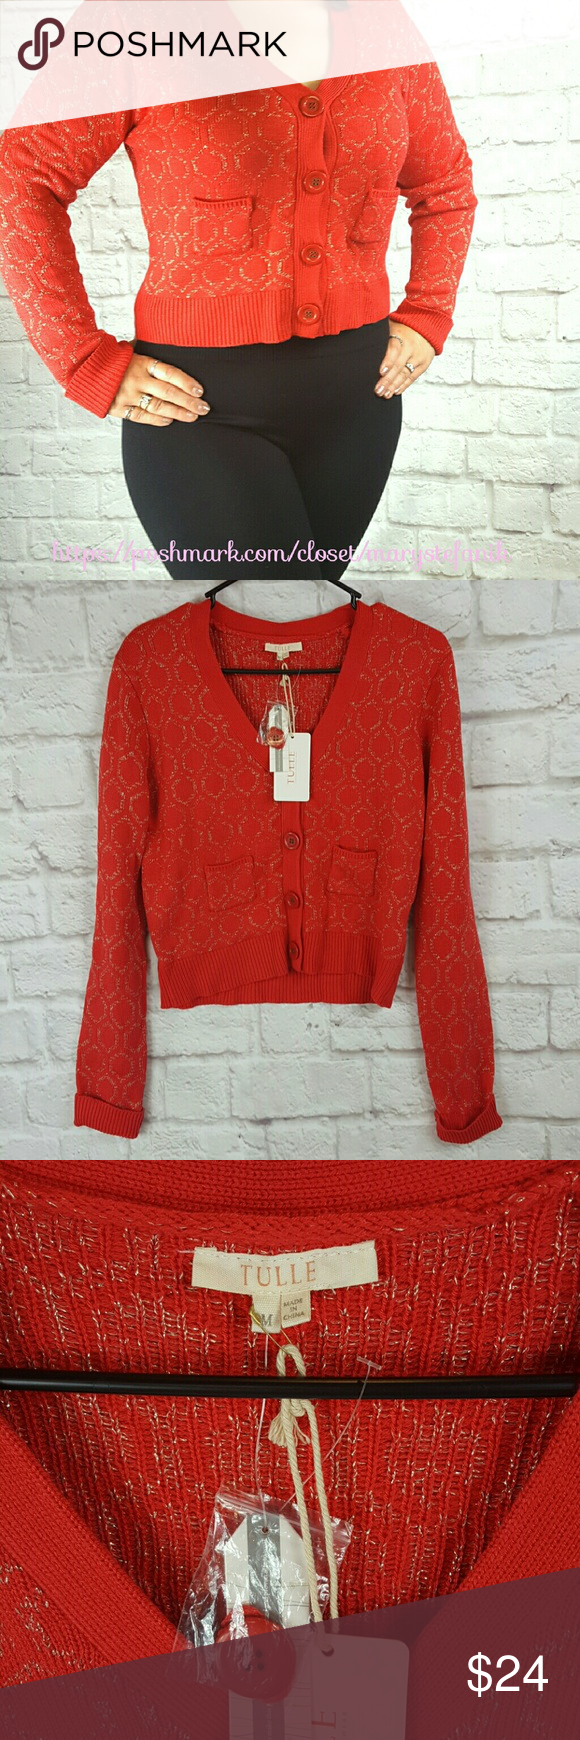 "❌ CYBER MONDAY ❌ NWT Tulle Red Gold Sweater 🆕 NWT Tulle Red and Gold Vintage Style Cardigan. Two front pockets. Button front enclosure. Size S and M available. 45% Rayon, 45% Nylon, and 10% Polyester.   Small: Waist from Seam to Seam: 17"" Length from Top: 21""  Medium: Waist from Seam to Seam: 18"" Length from Top: 21""  Please let me know if you have any questions. Happy Poshing! Tulle Sweaters Cardigans"